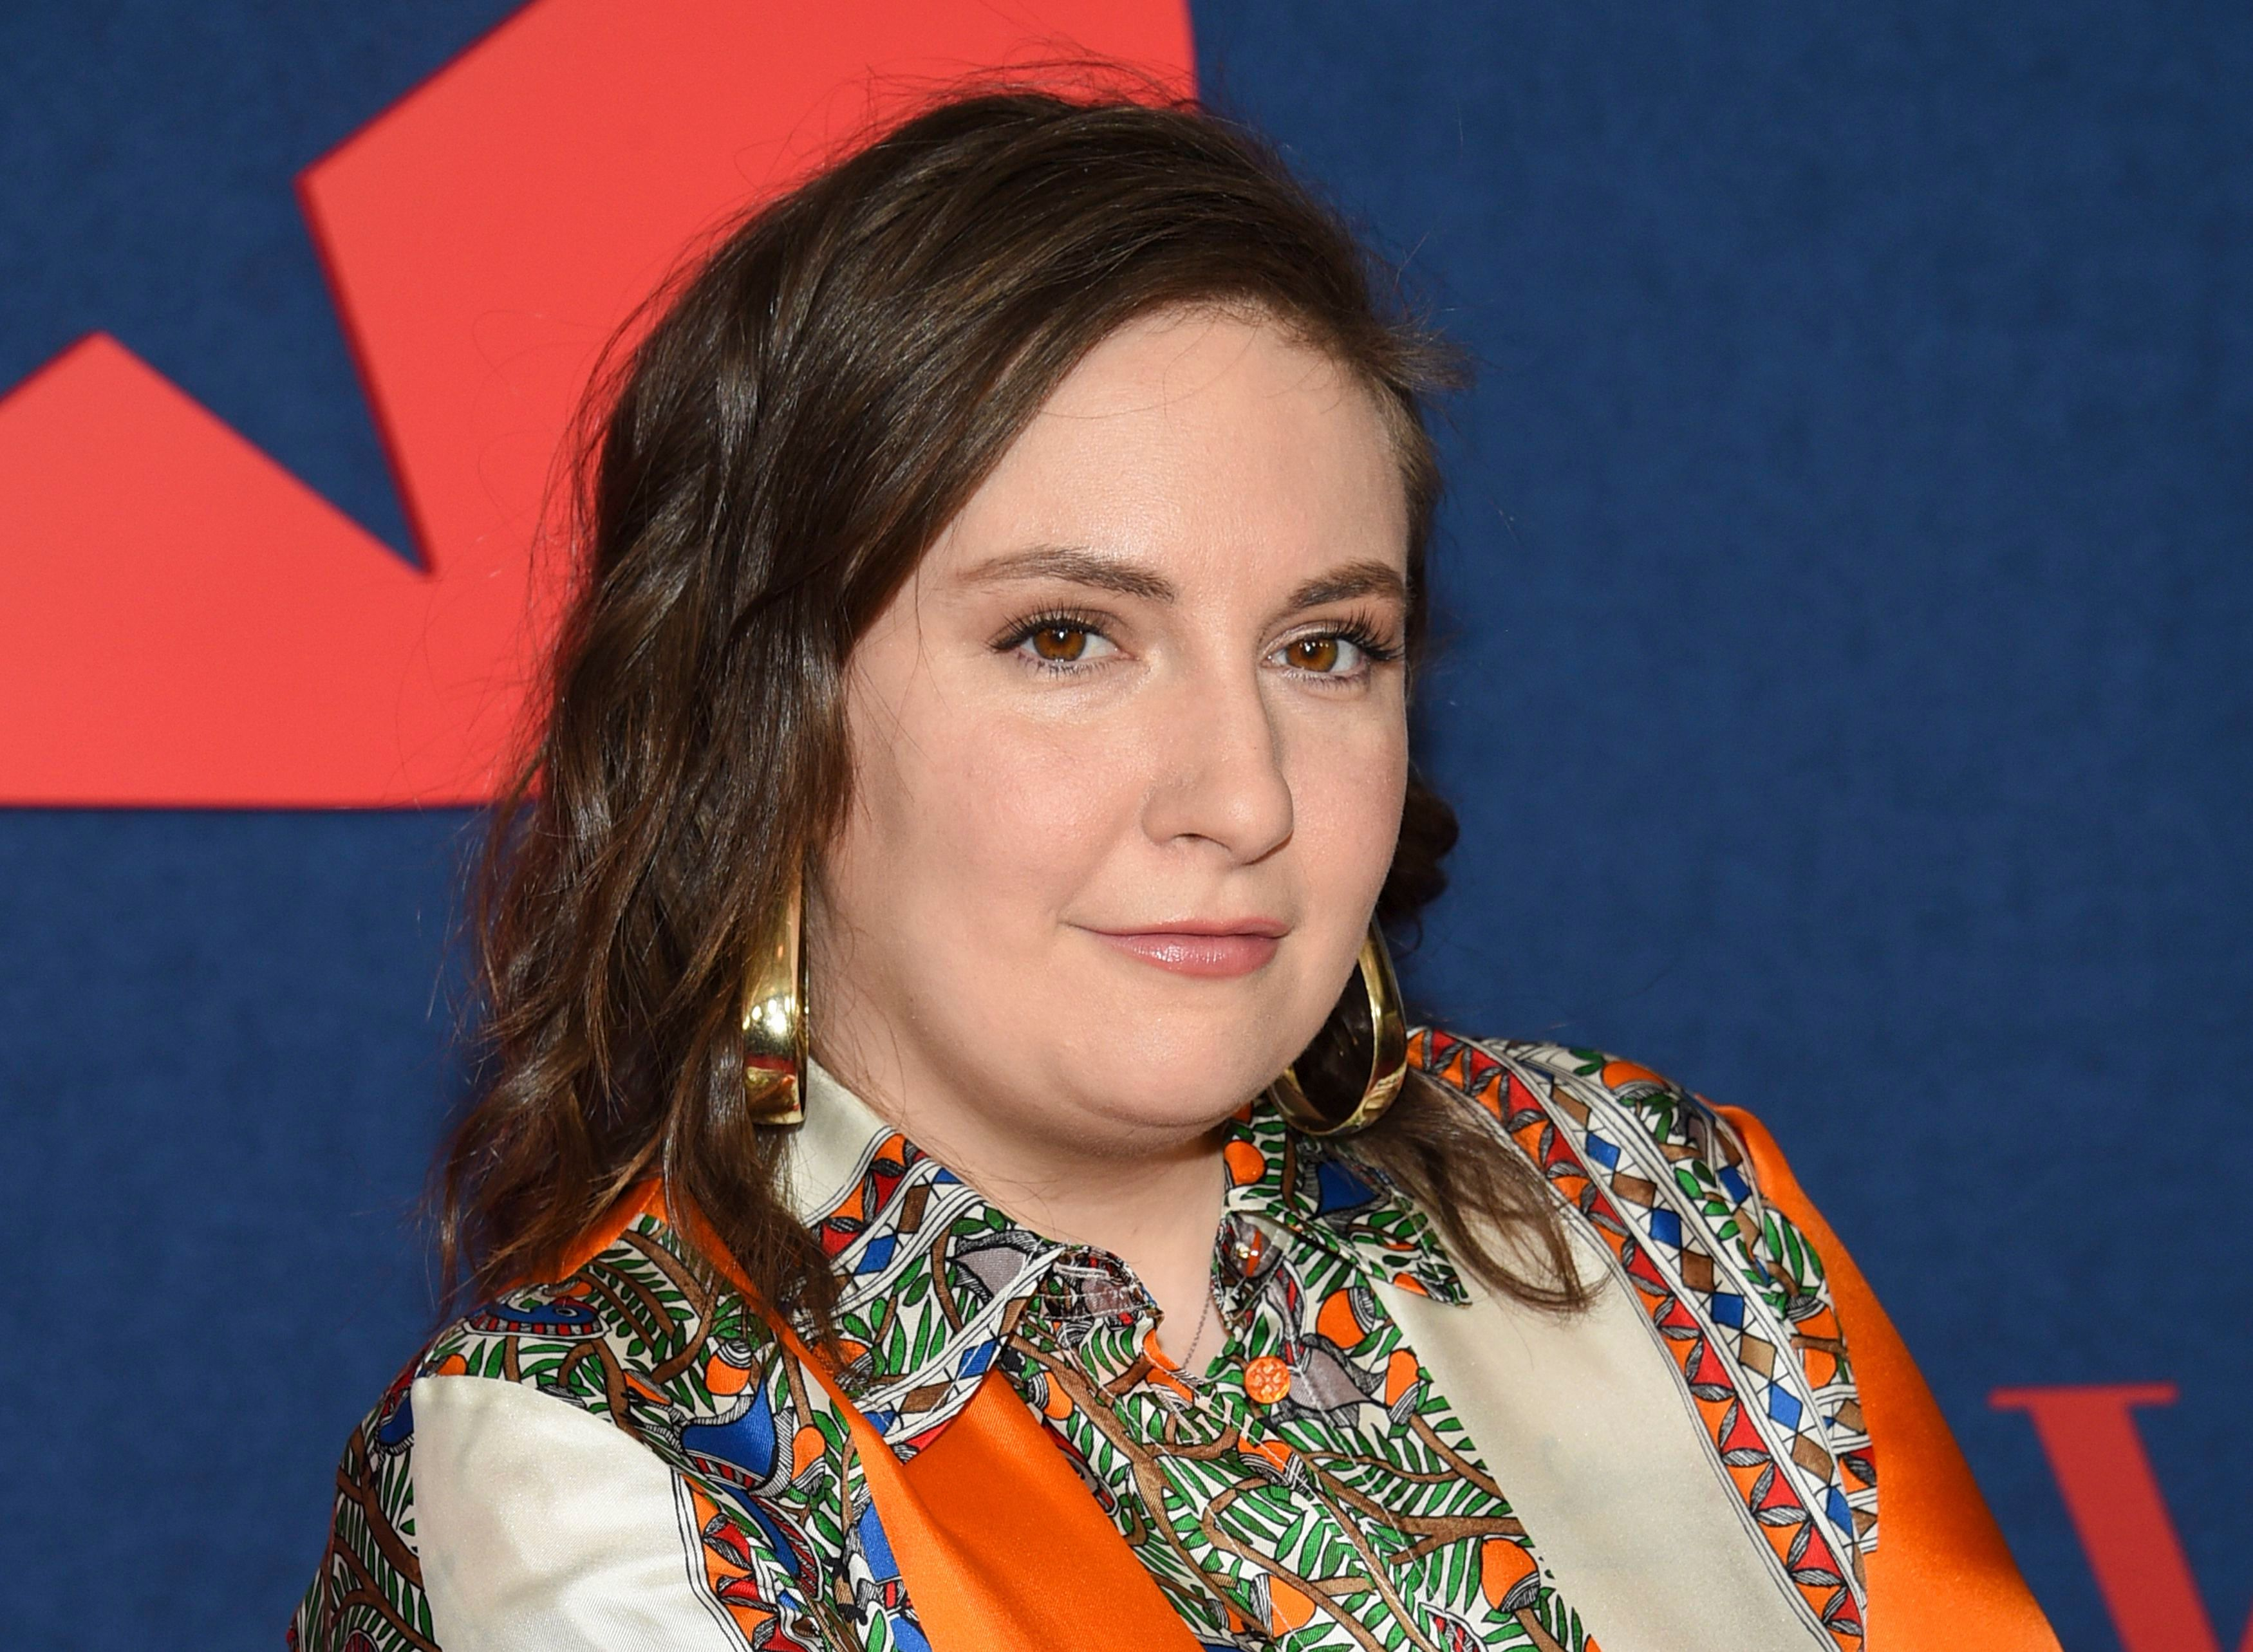 Lena Dunham Returns to HBO to Direct International High-Finance Series 'Industry'